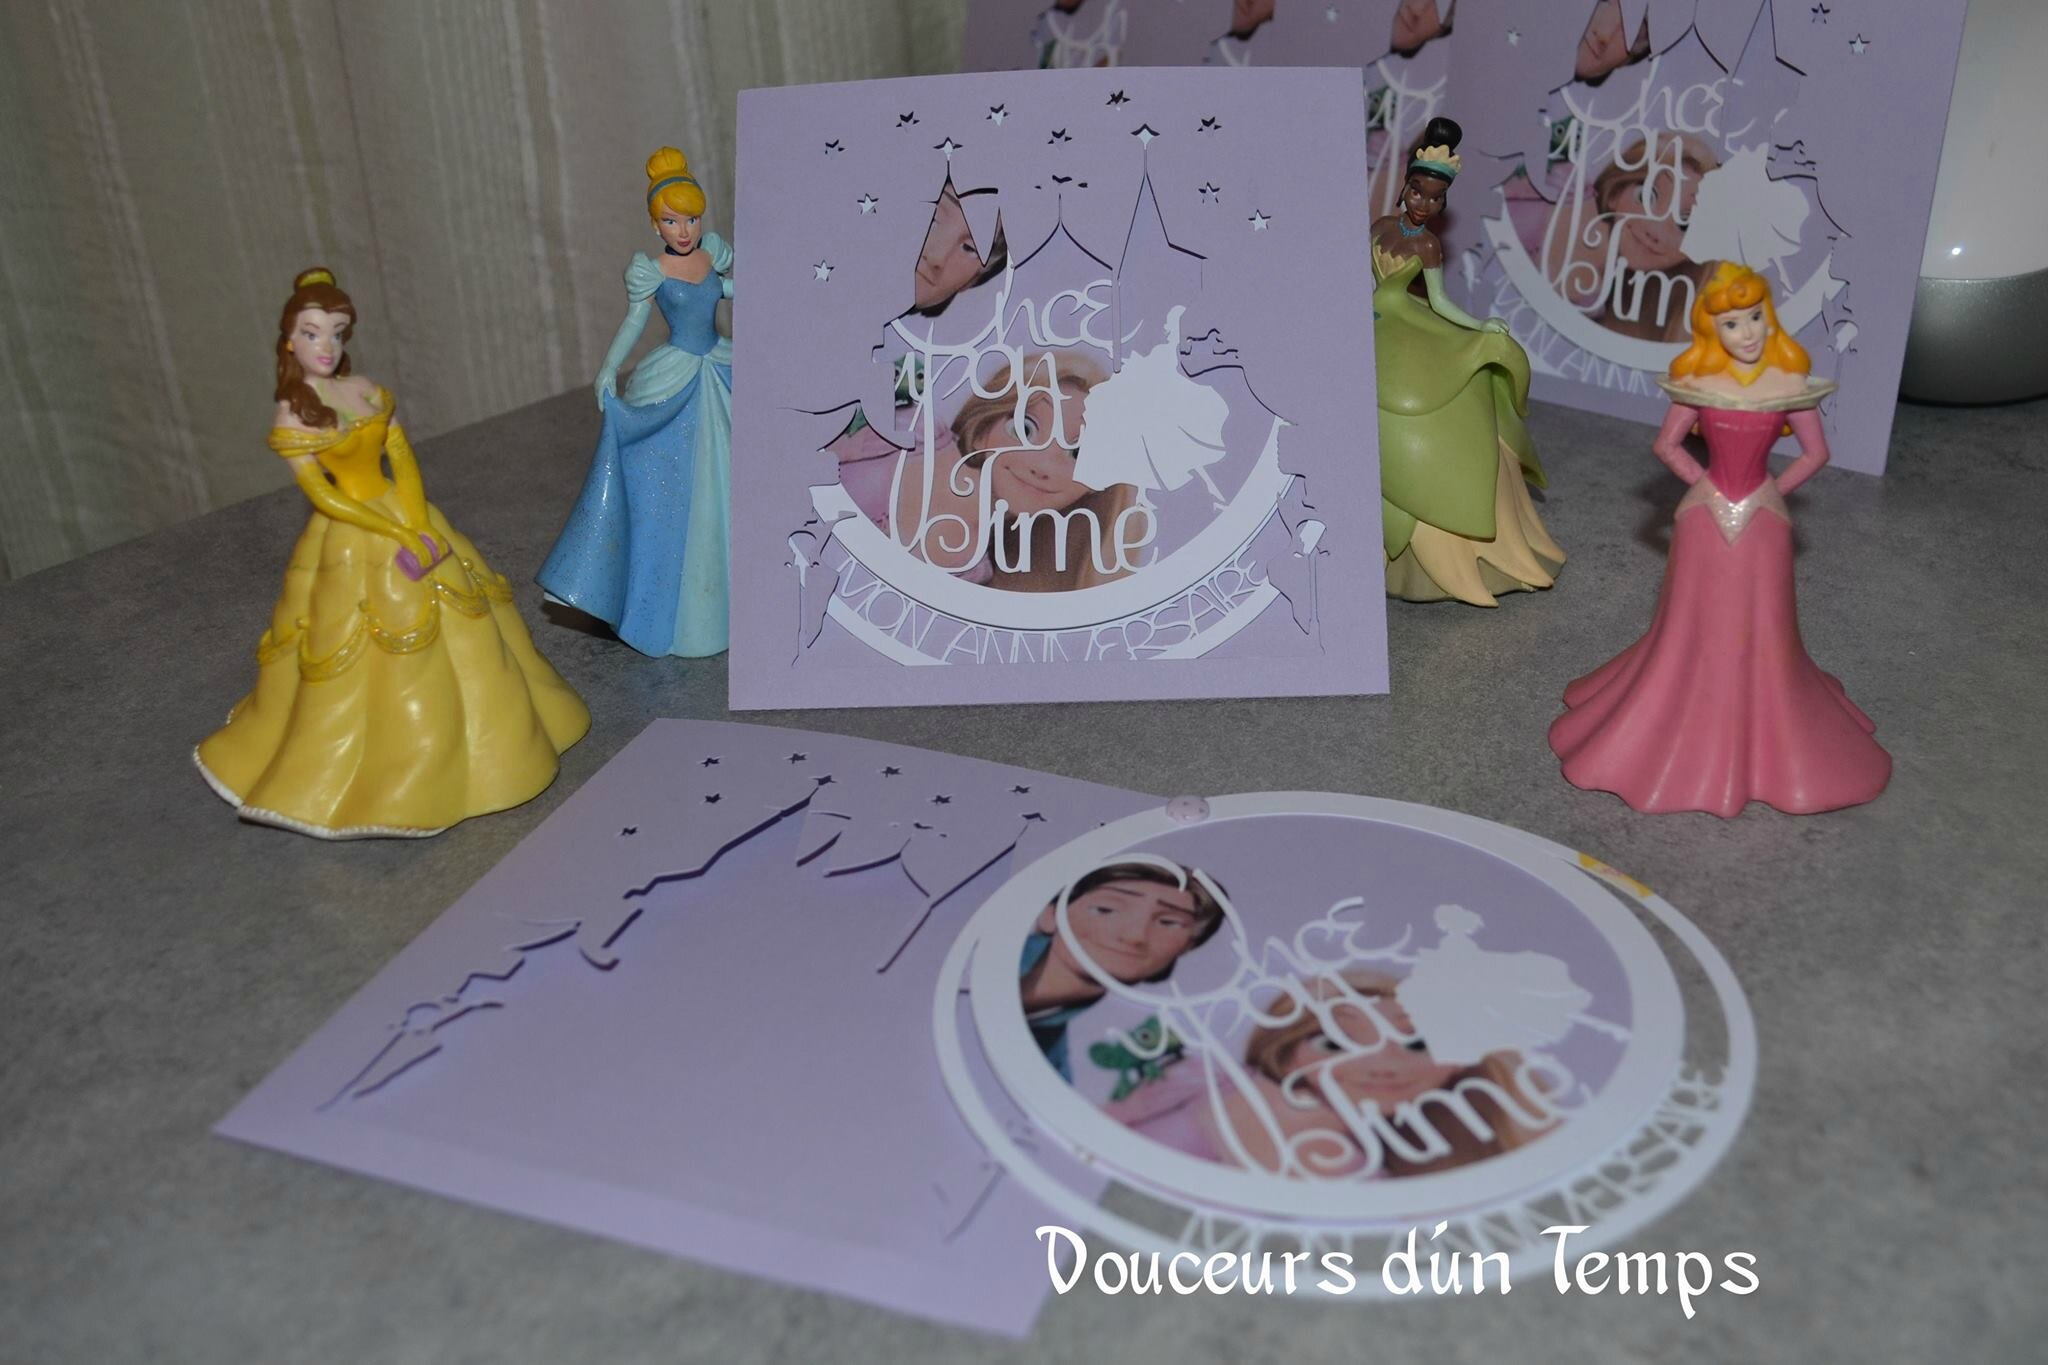 Hervorragend Invitation de princesse - Douceurs d'un temps LR33